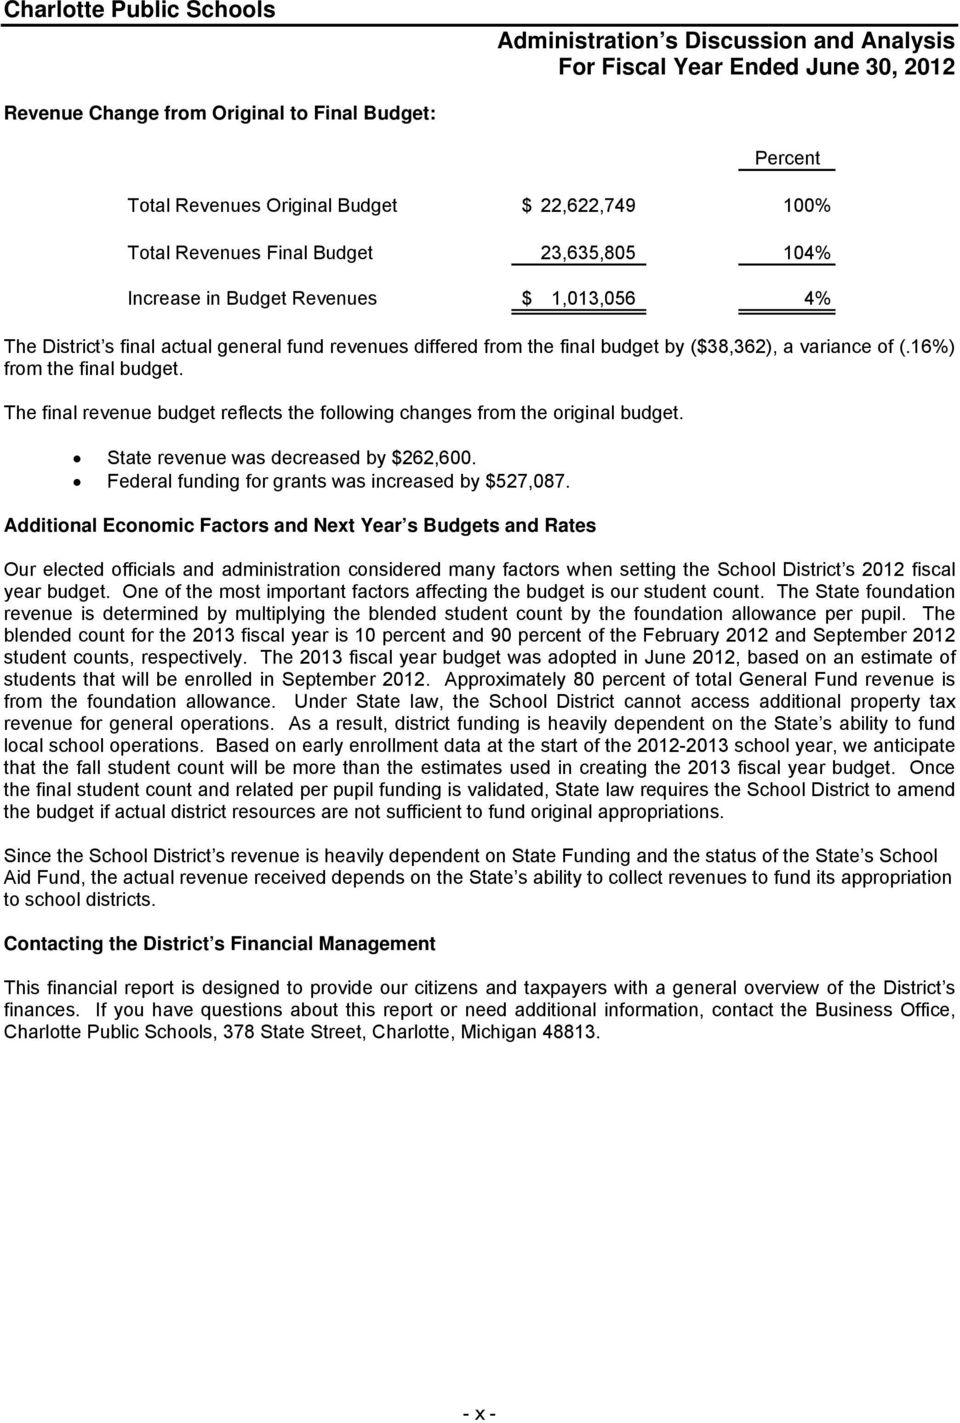 The final revenue budget reflects the following changes from the original budget. State revenue was decreased by $262,600. Federal funding for grants was increased by $527,087.